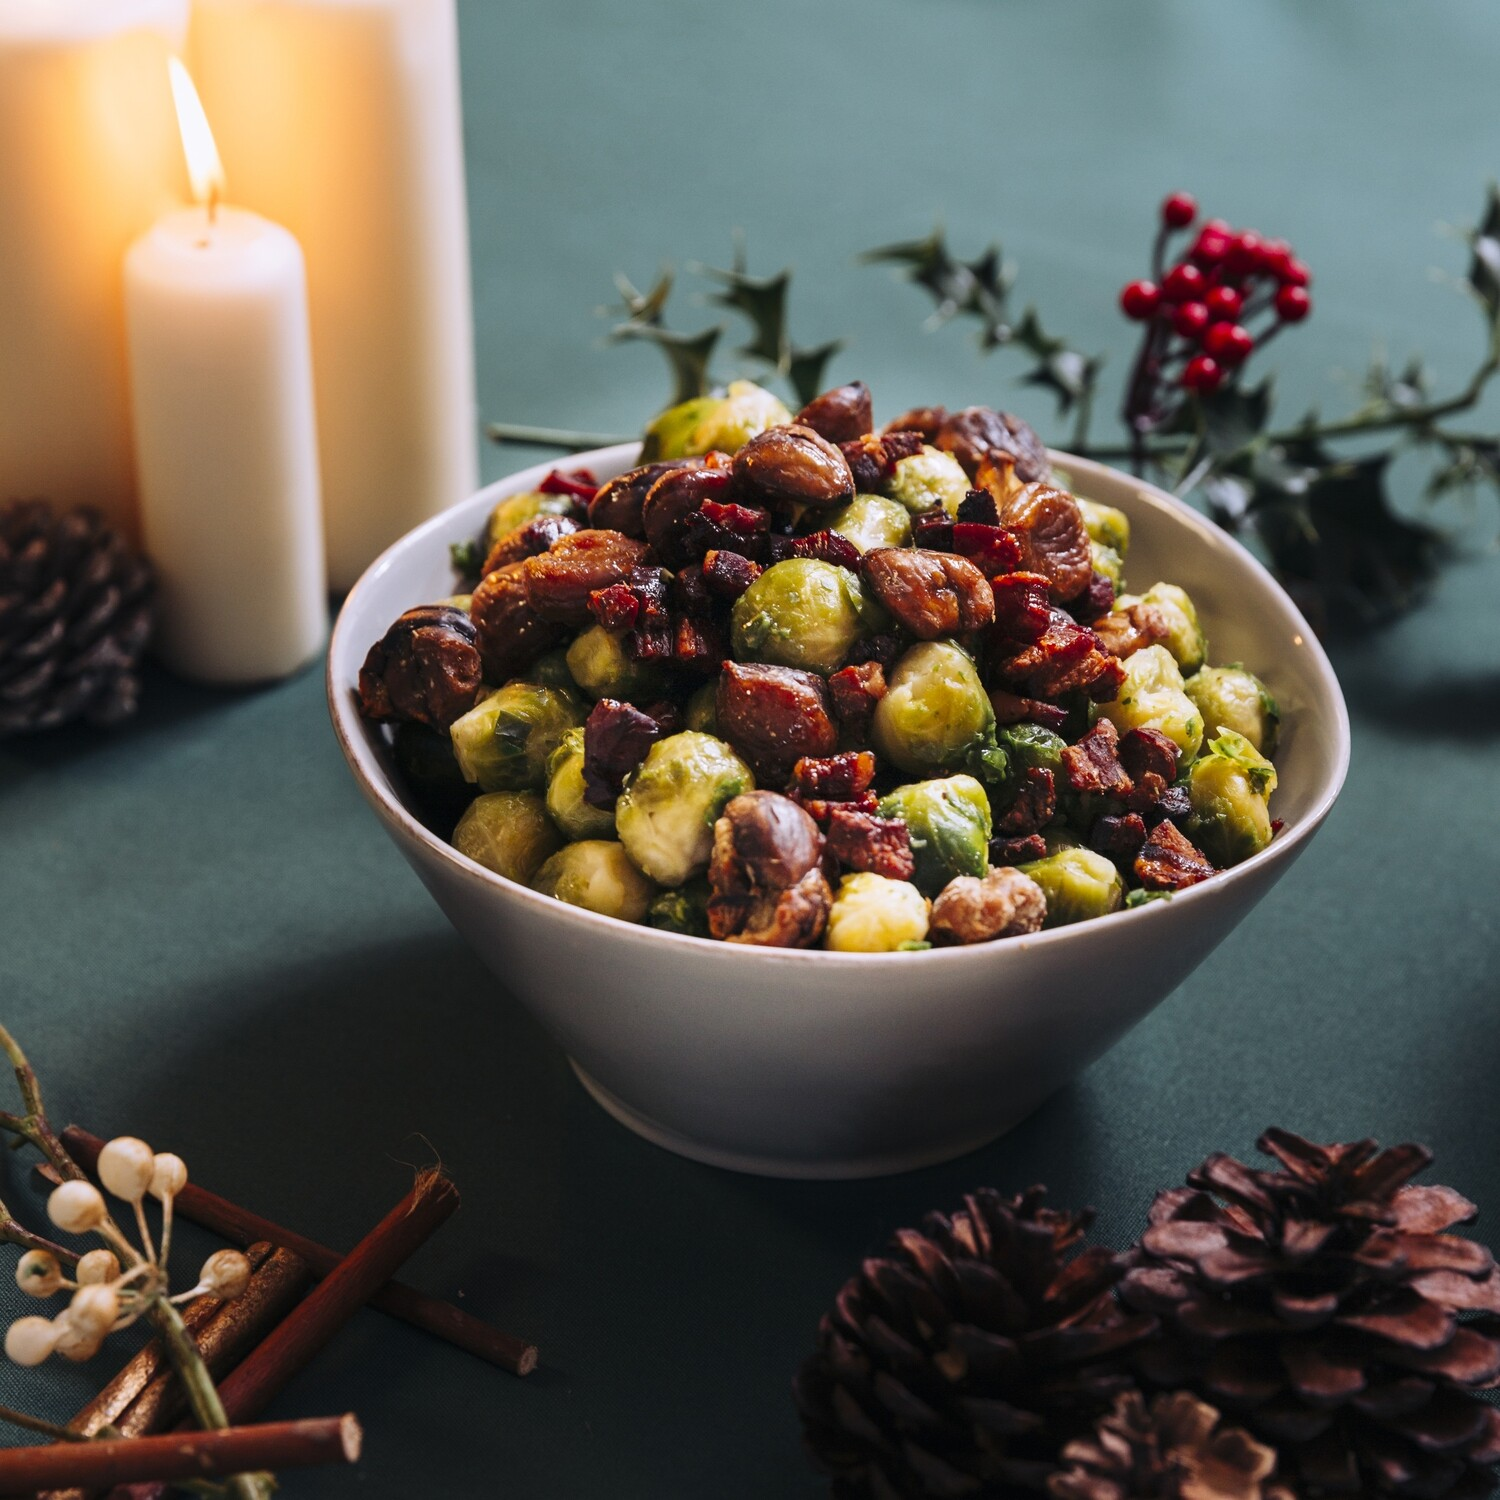 Sautéed Brussel Sprouts with Crisp Pancetta and Chestnuts